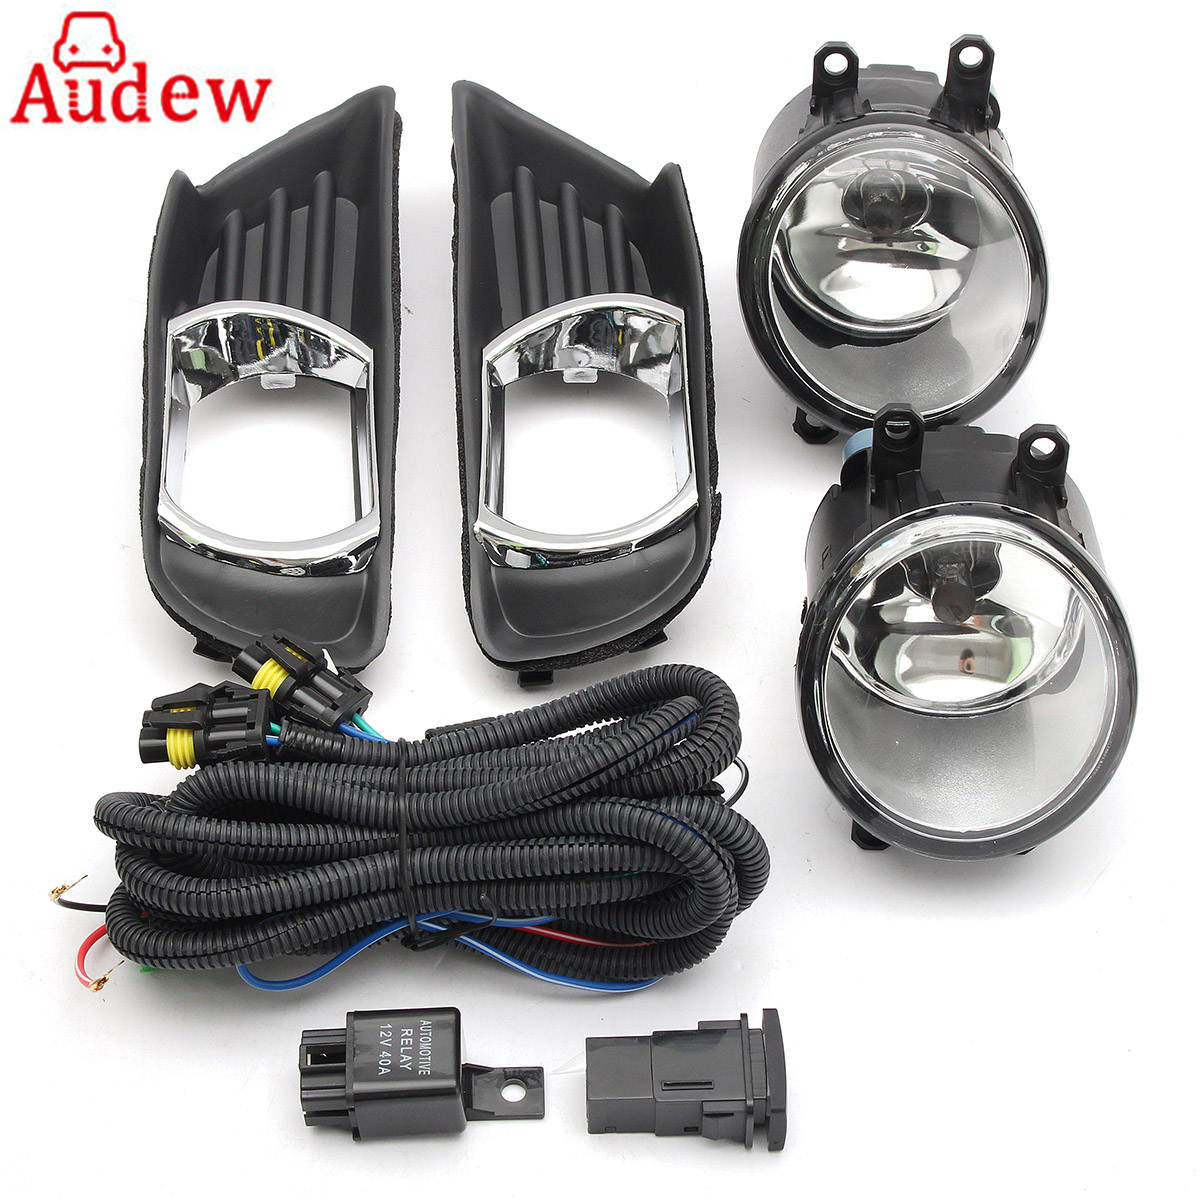 2Pcs Front Bumper Fog Lights Lamps DRL Driving Lights Fog Lamp Clear Lens Covers & Switch For Toyota/Camry 07-09